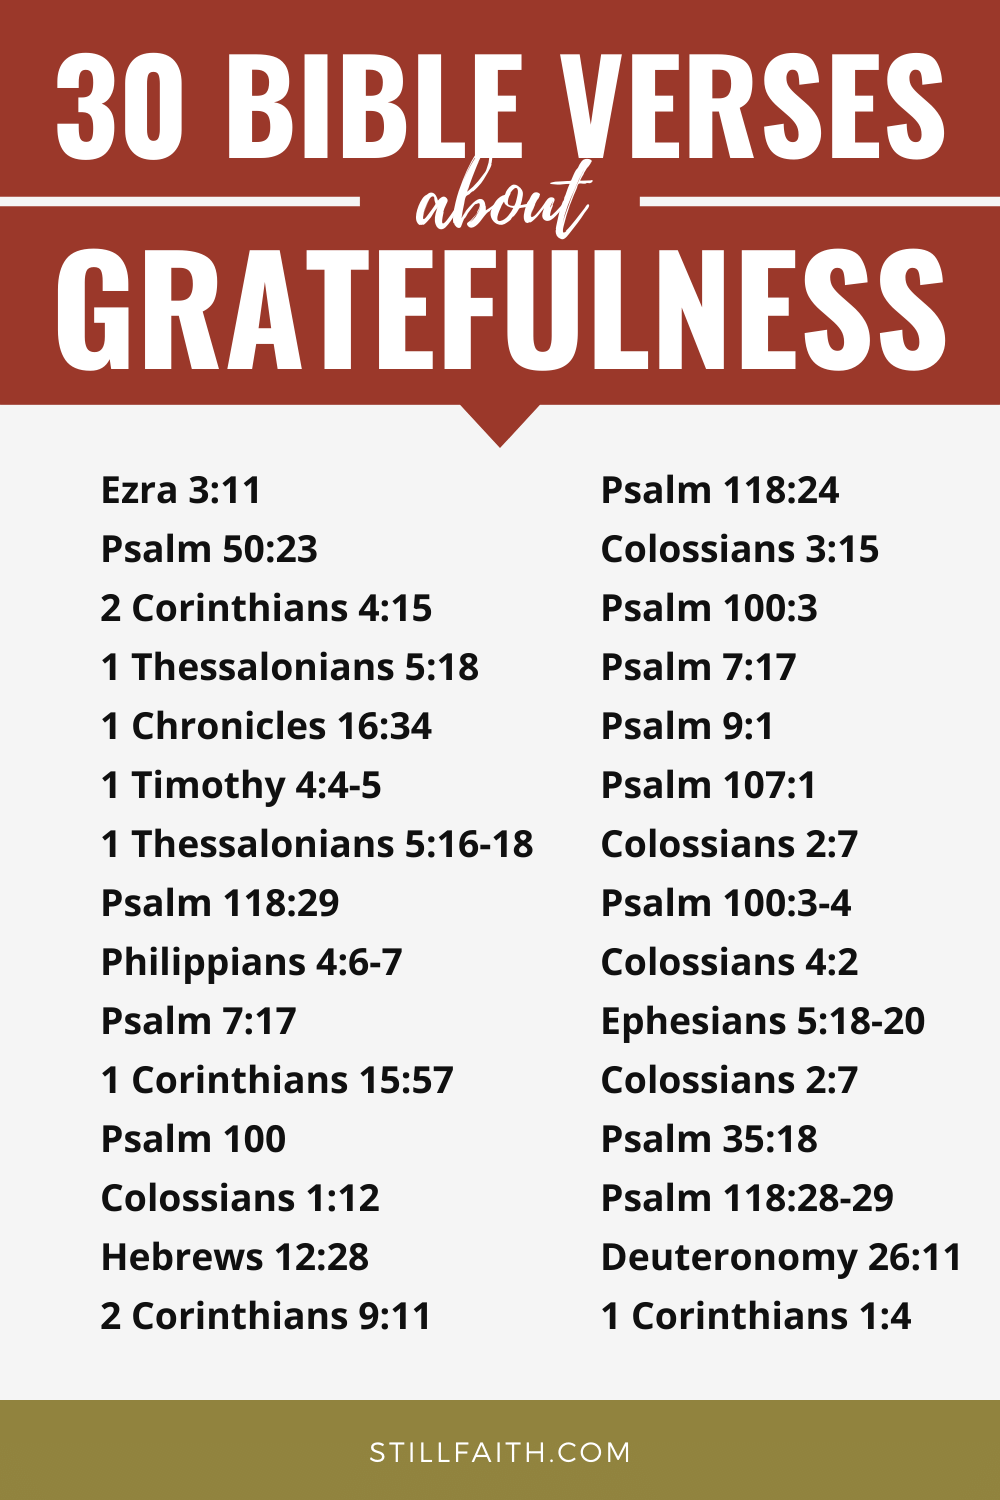 160 Bible Verses about Gratefulness